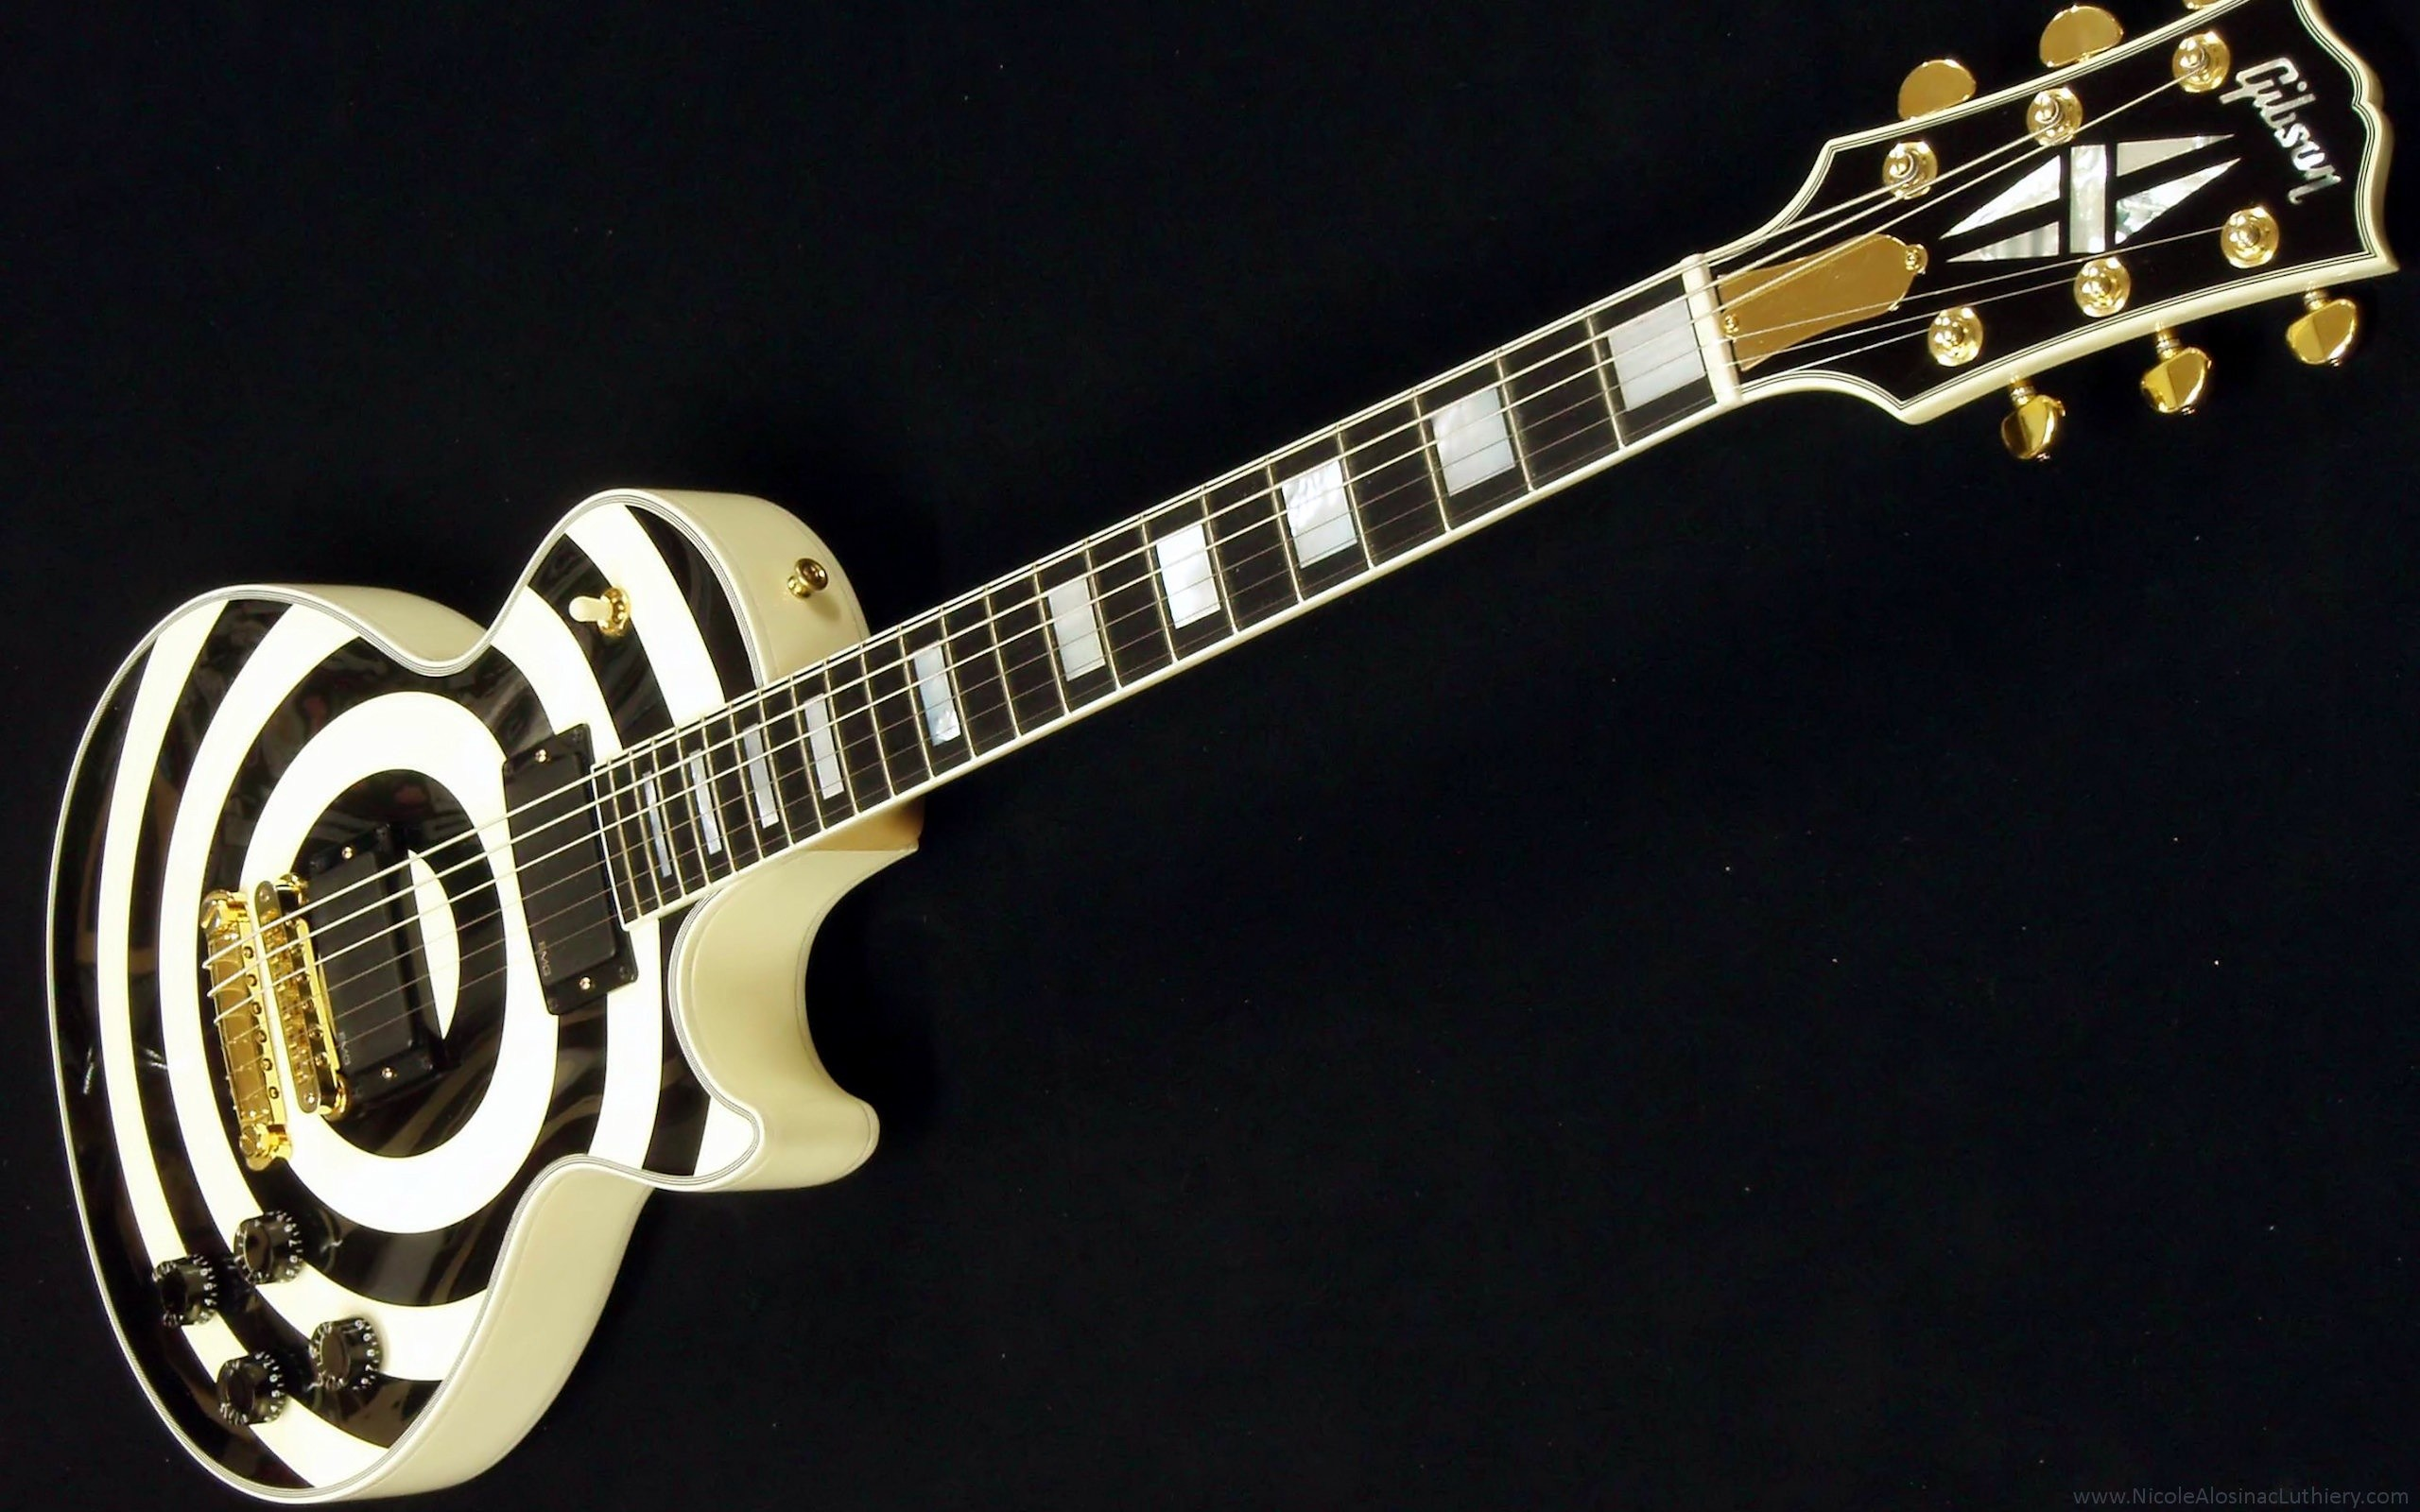 gibson les paul wallpaper (63+ images)